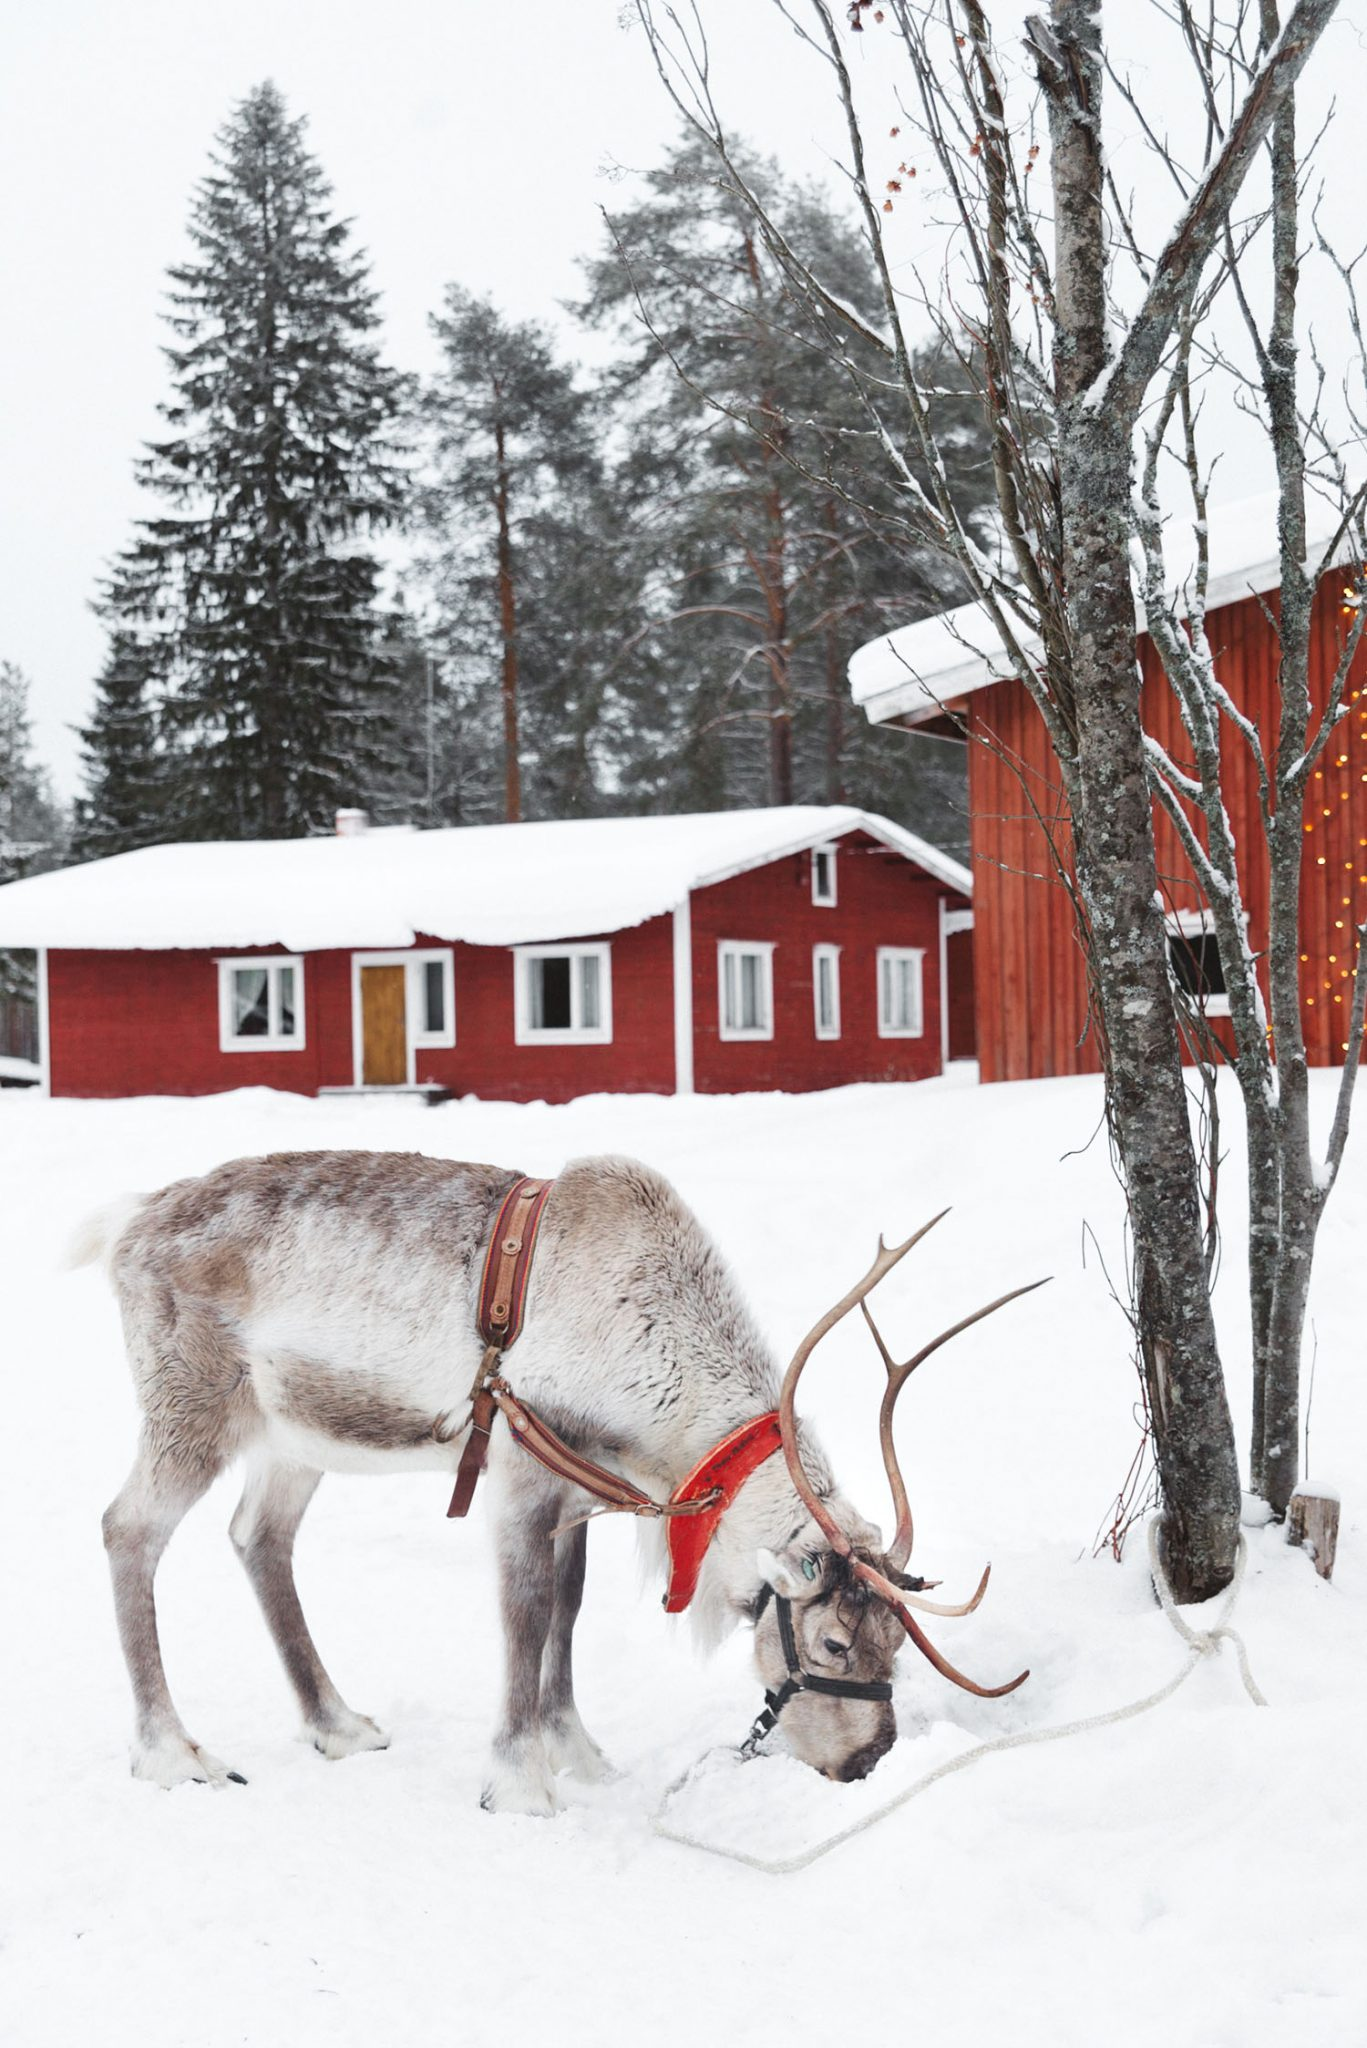 Reindeer in Finland eating at farm - with traditional red Finnish houses in the background